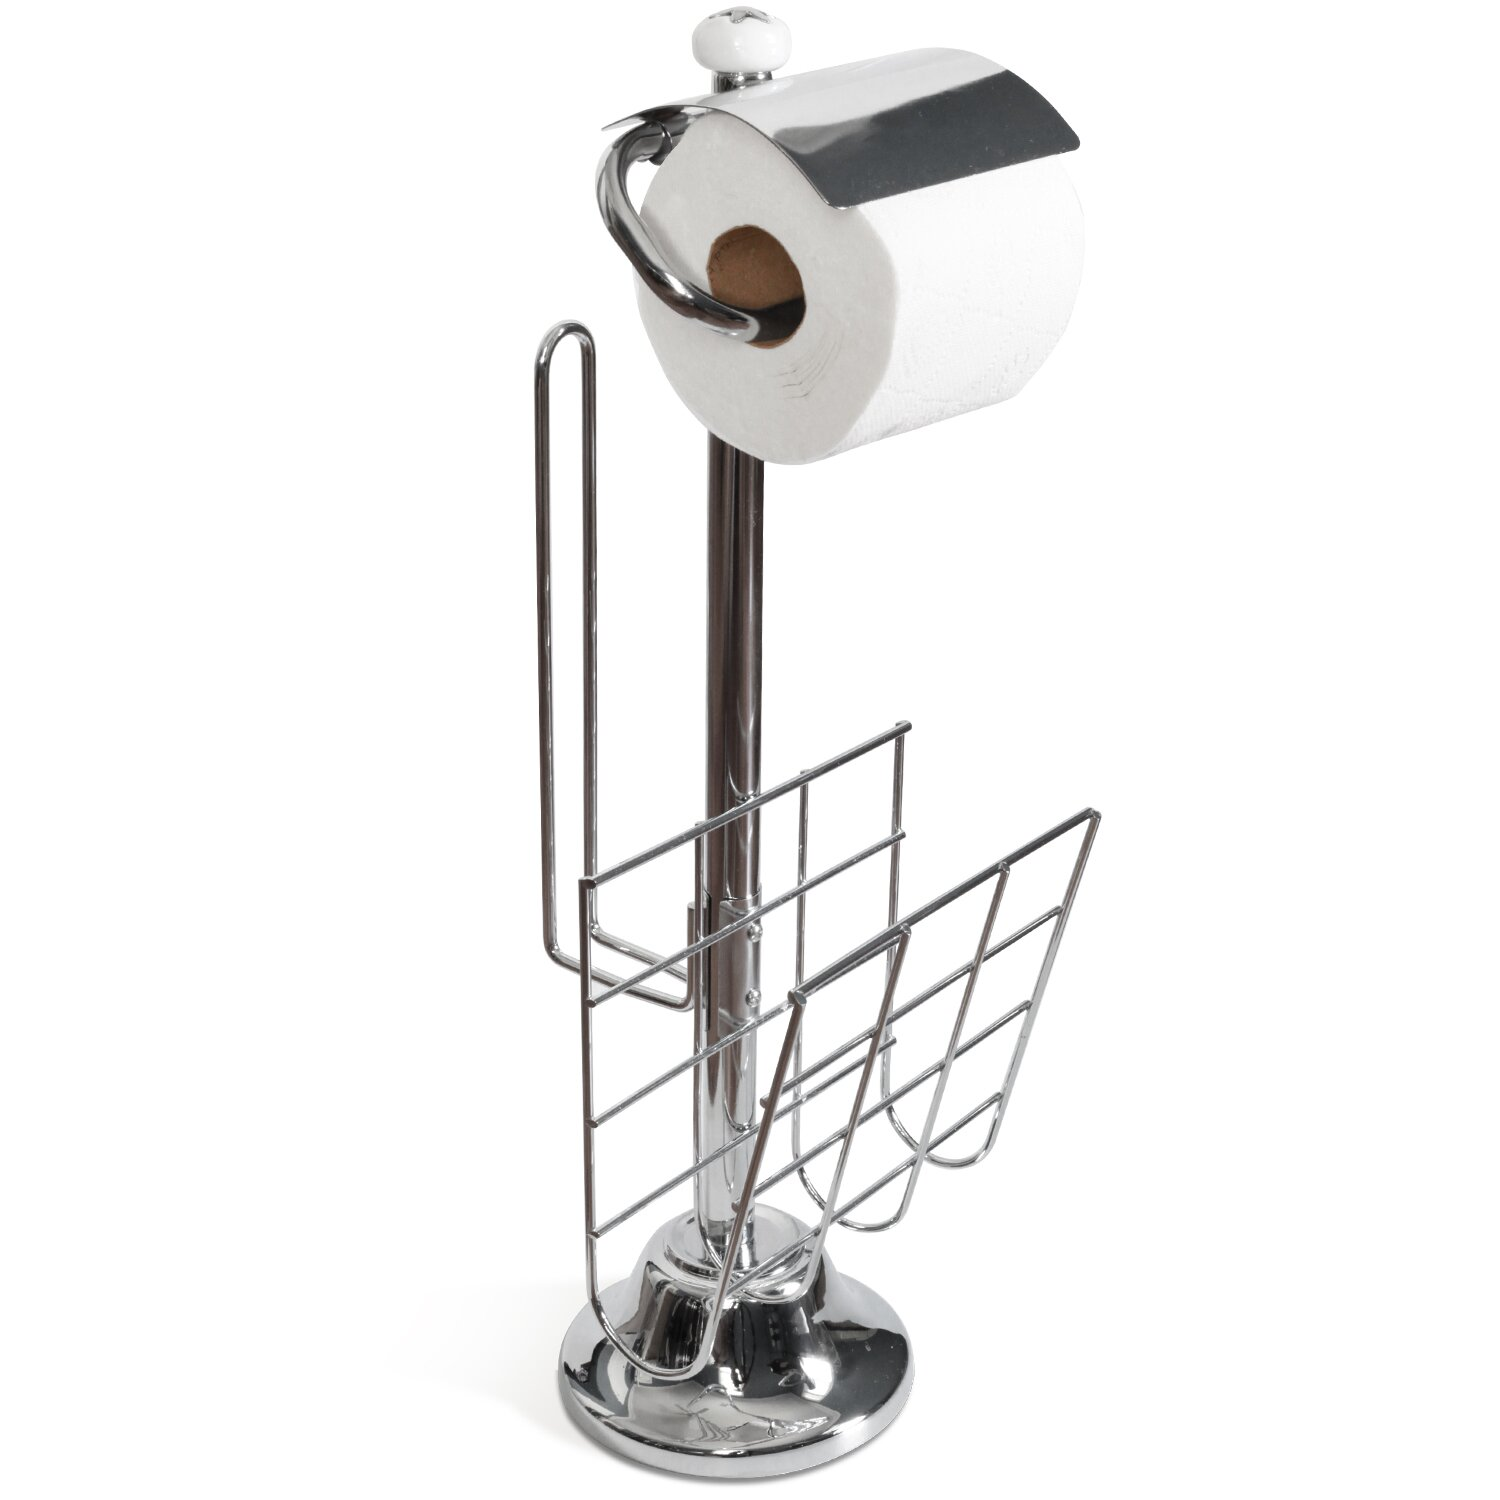 Toilet Tree Products Freestanding Toilet Paper Holder And Stand With Magazine Rack Reviews